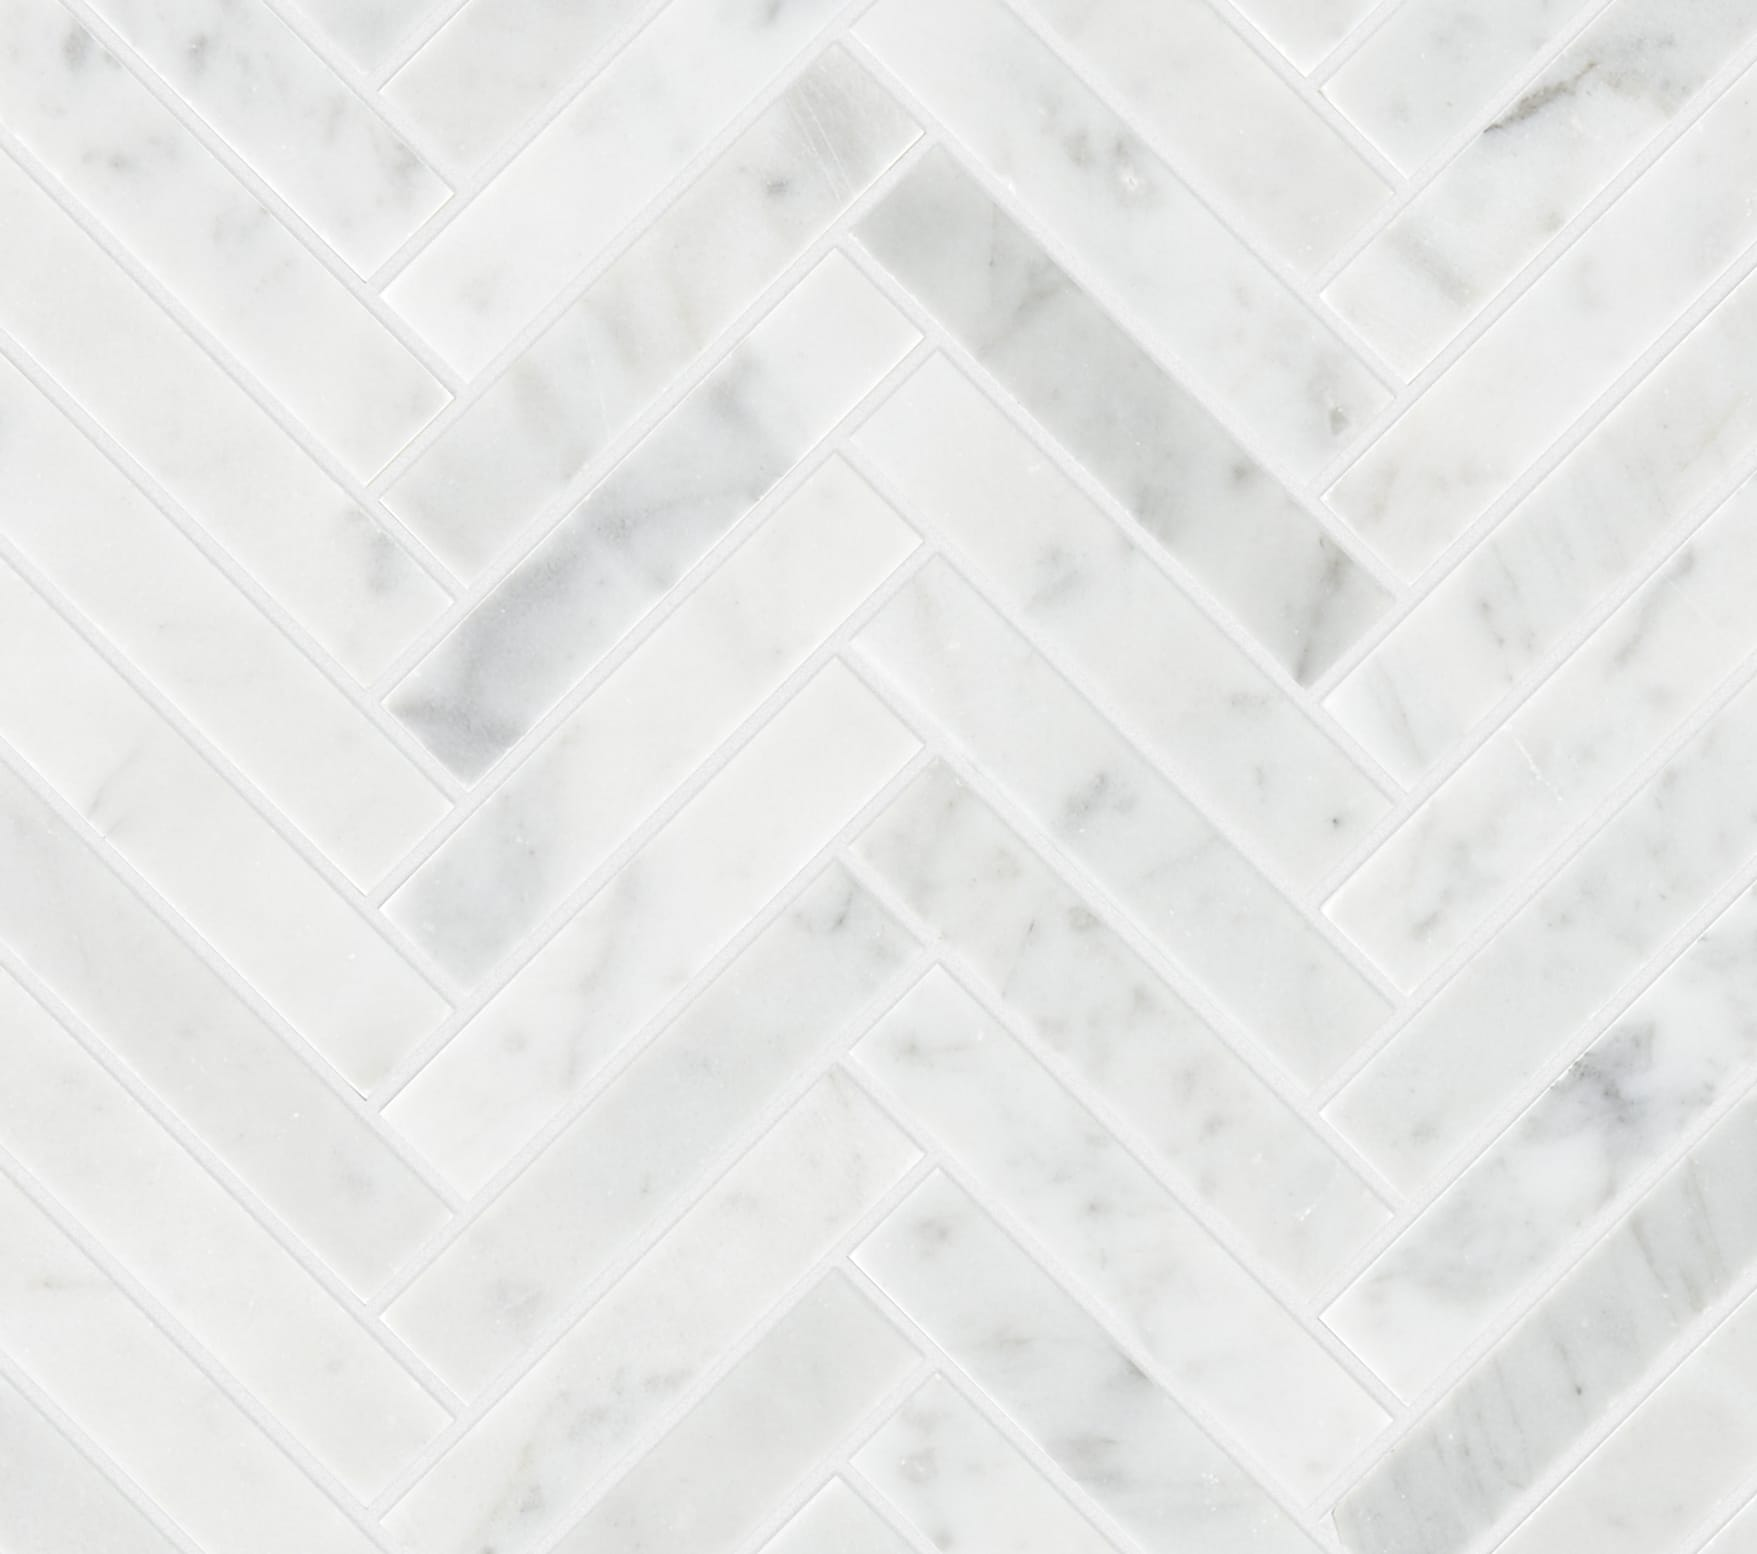 Carrara Honed Marble Herringbone Mosaic Tile